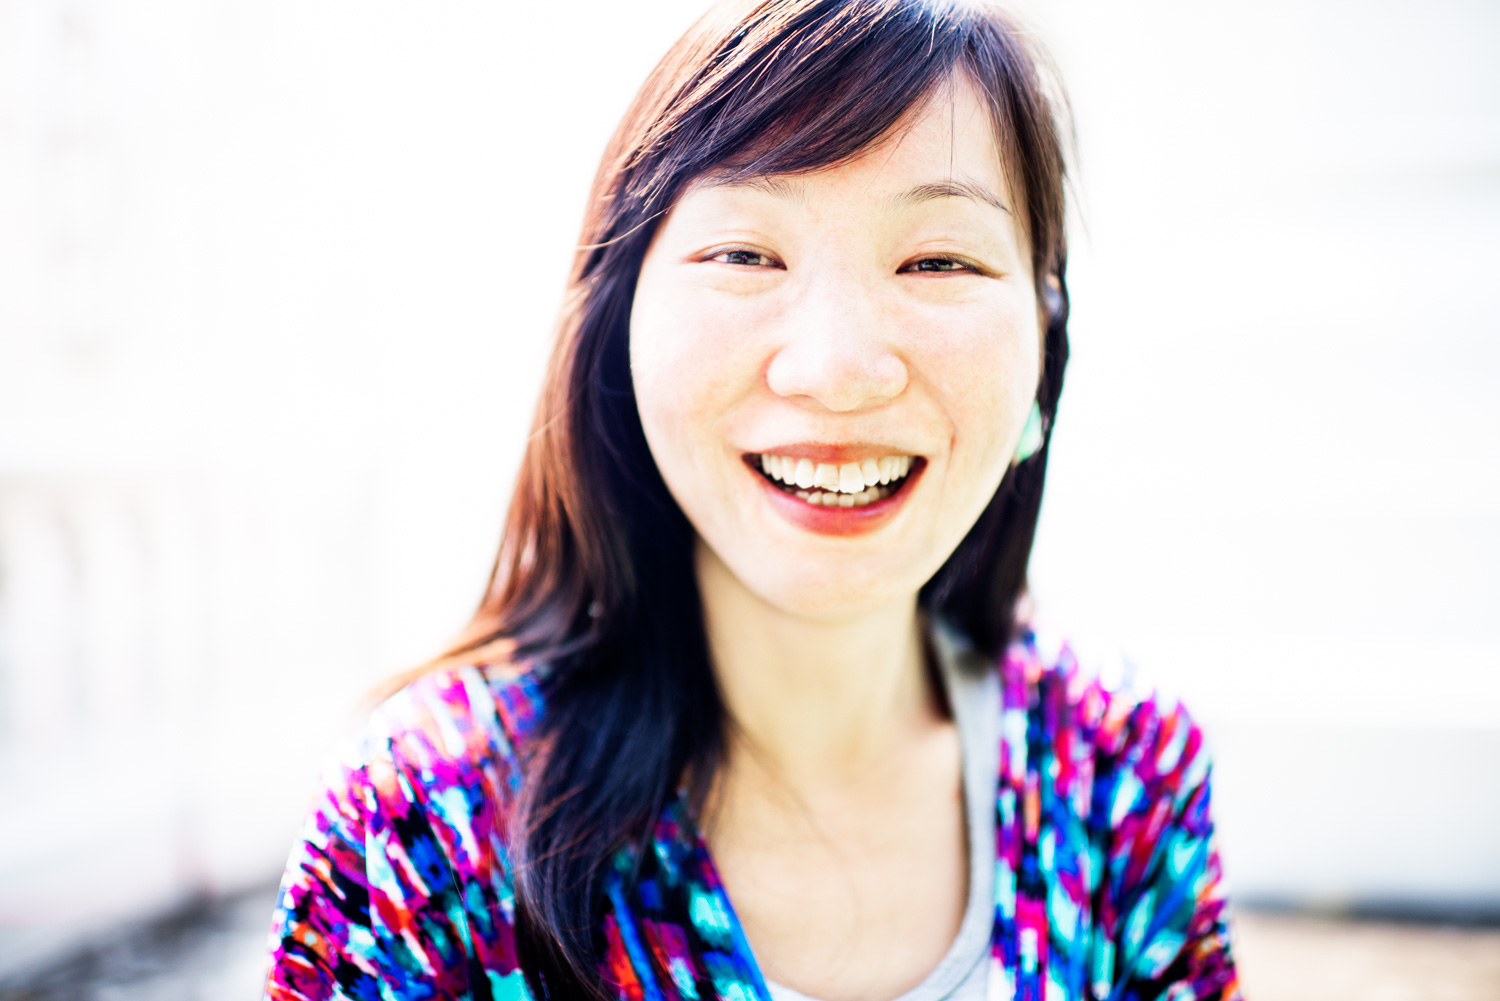 Pretty Chinese Woman Finding Your Strength In Isolation - 3 Methods To Make Your Subject Pop!